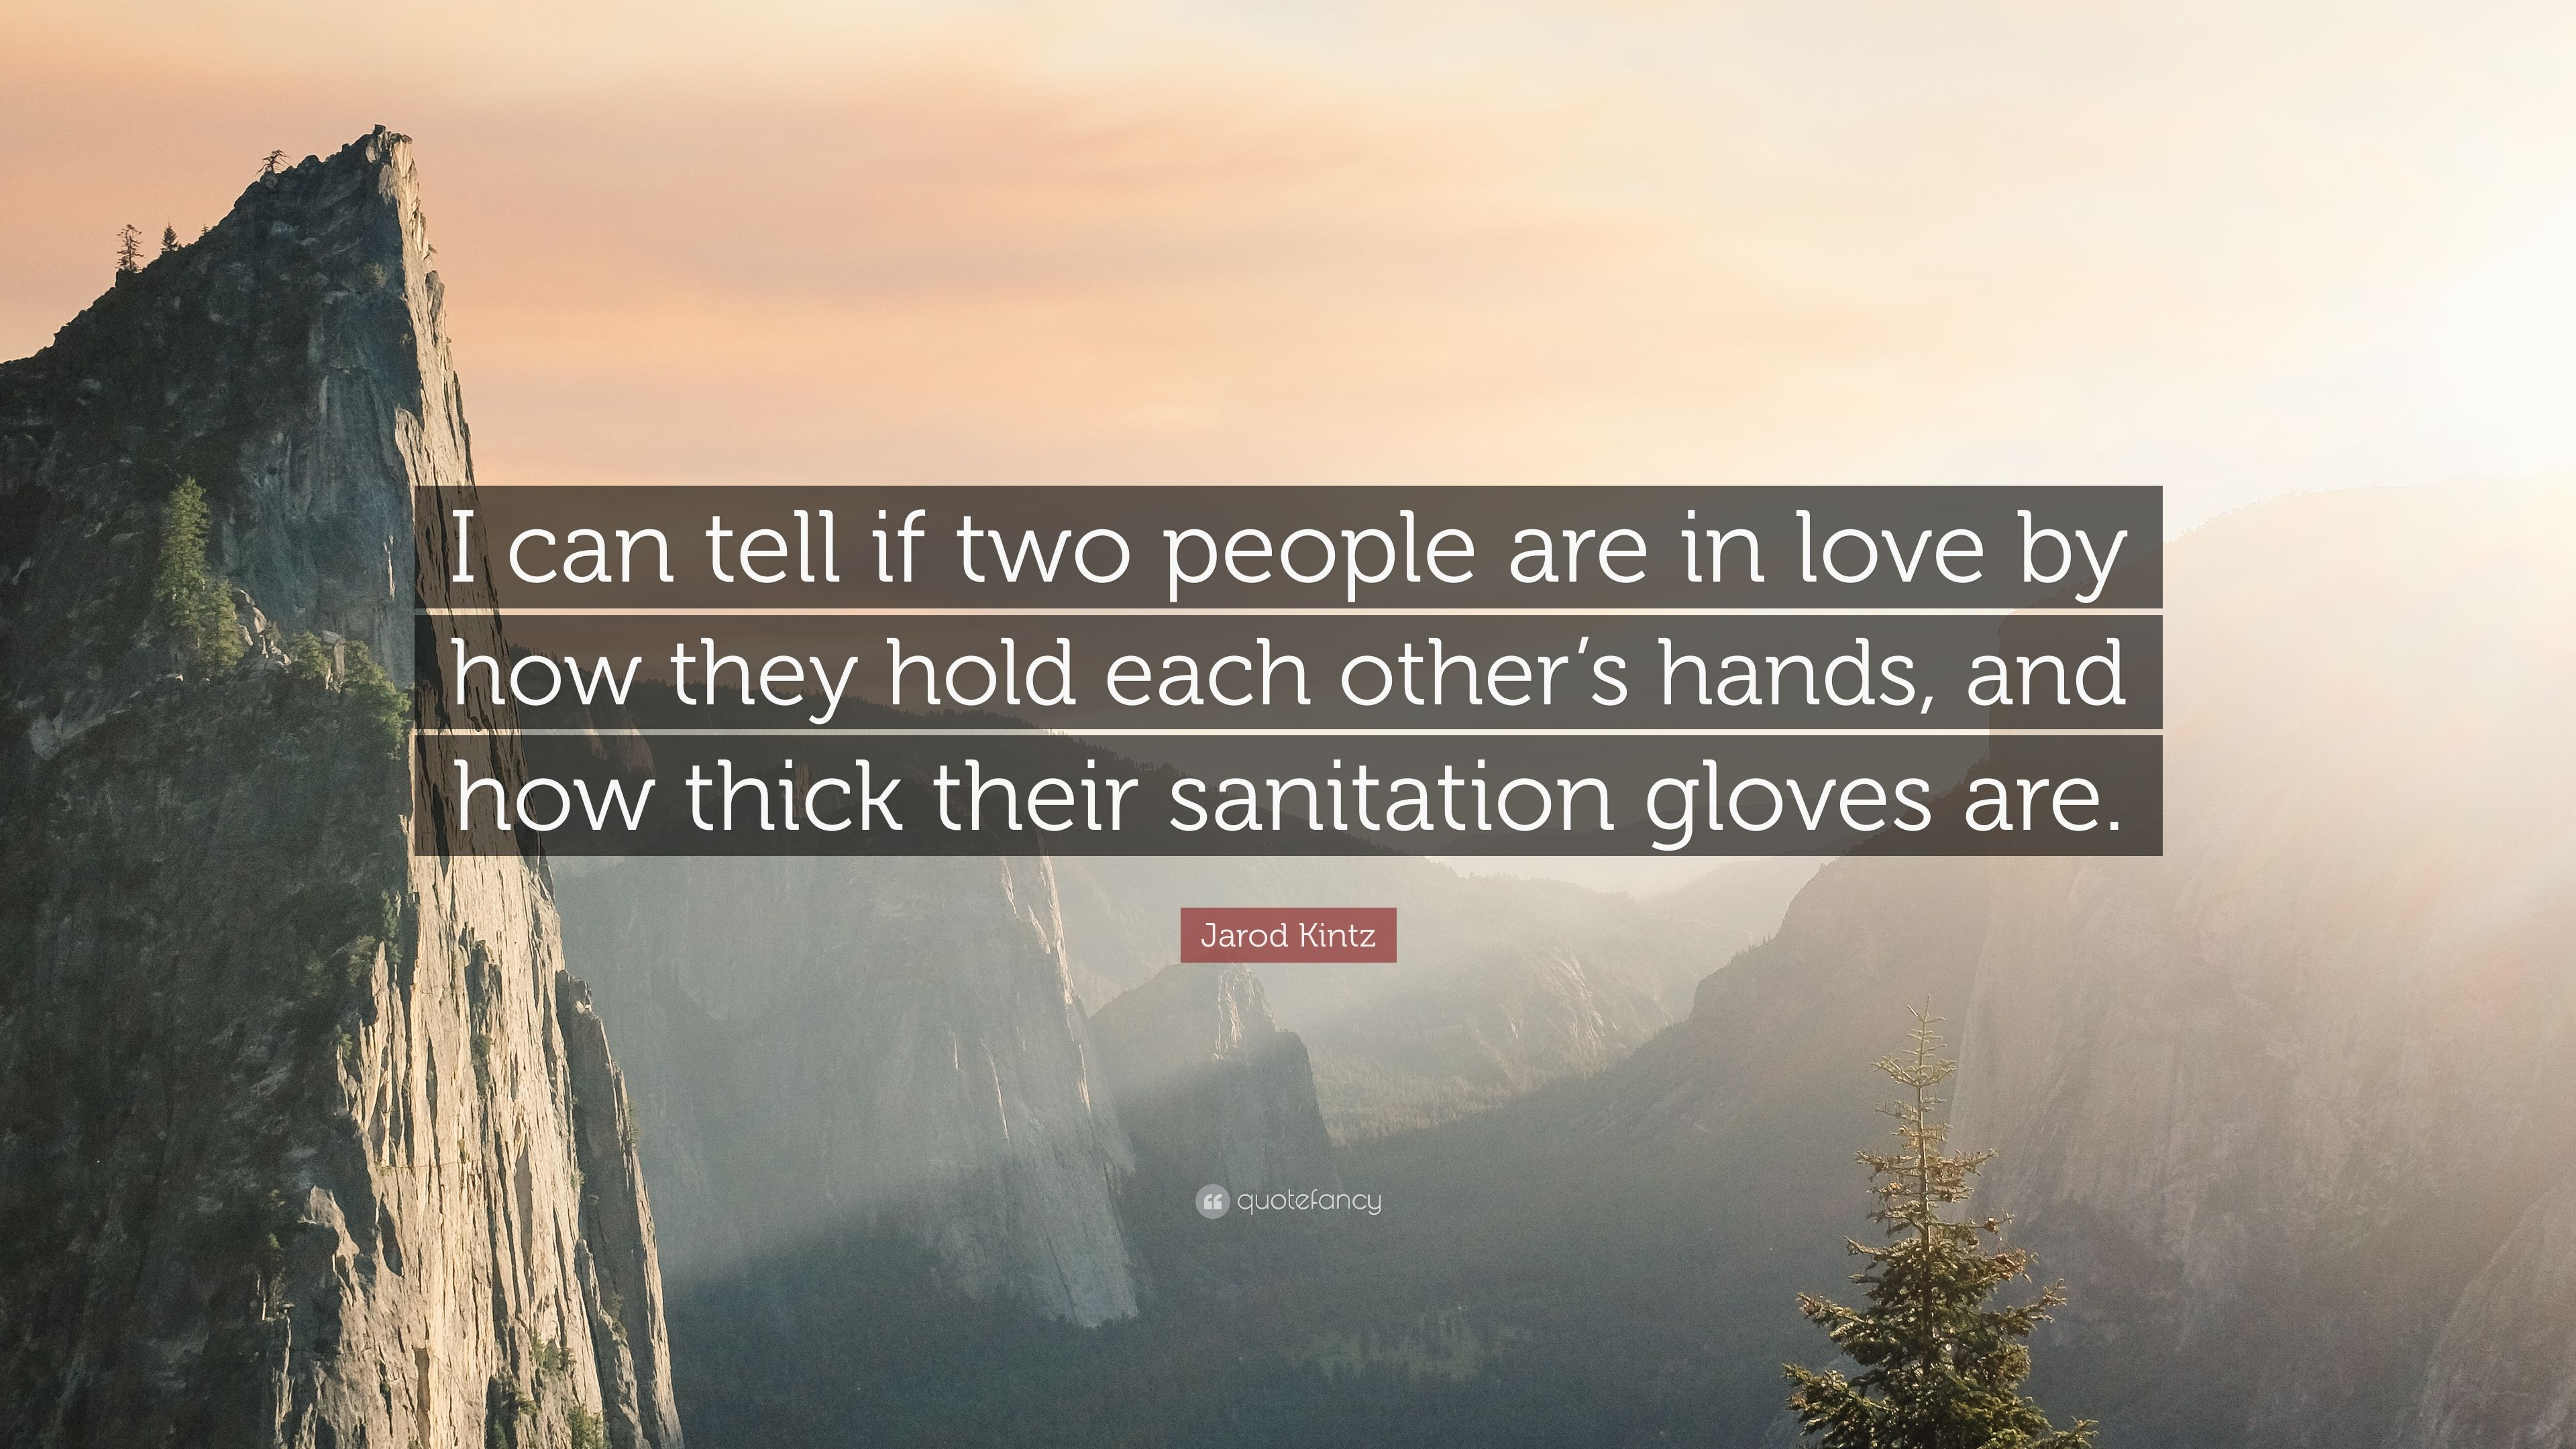 how to tell if two people are in love